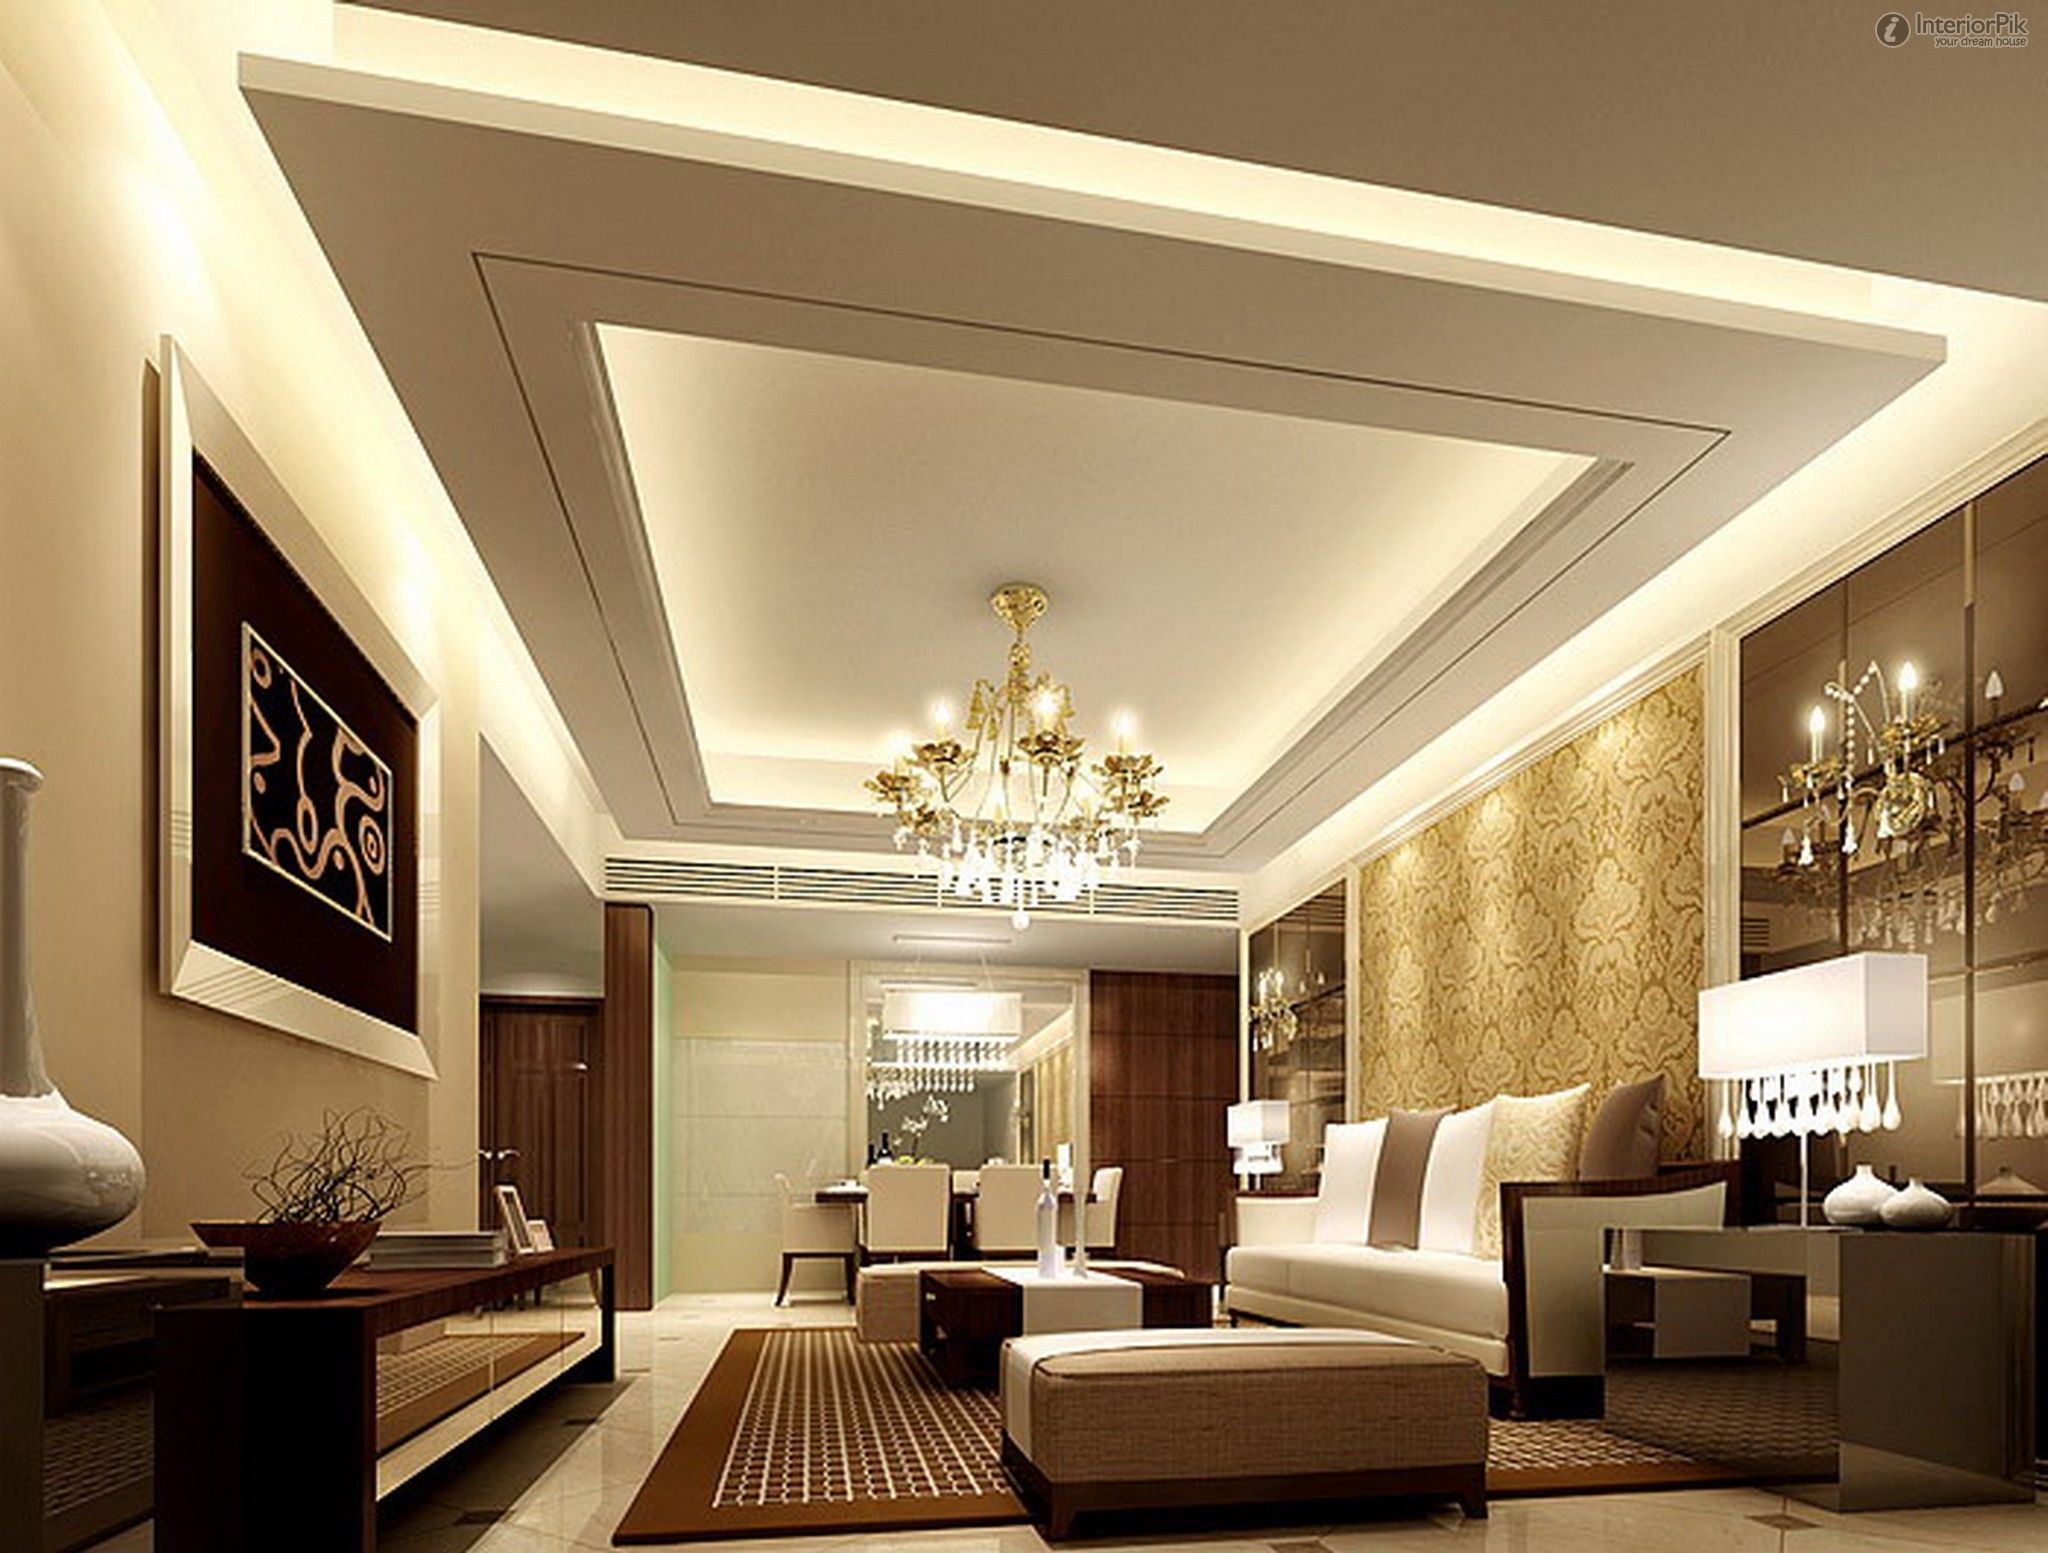 Ceiling Decorating Ideas For Living Room.  Living Room Lighting Ideas Pictures rooms and Check